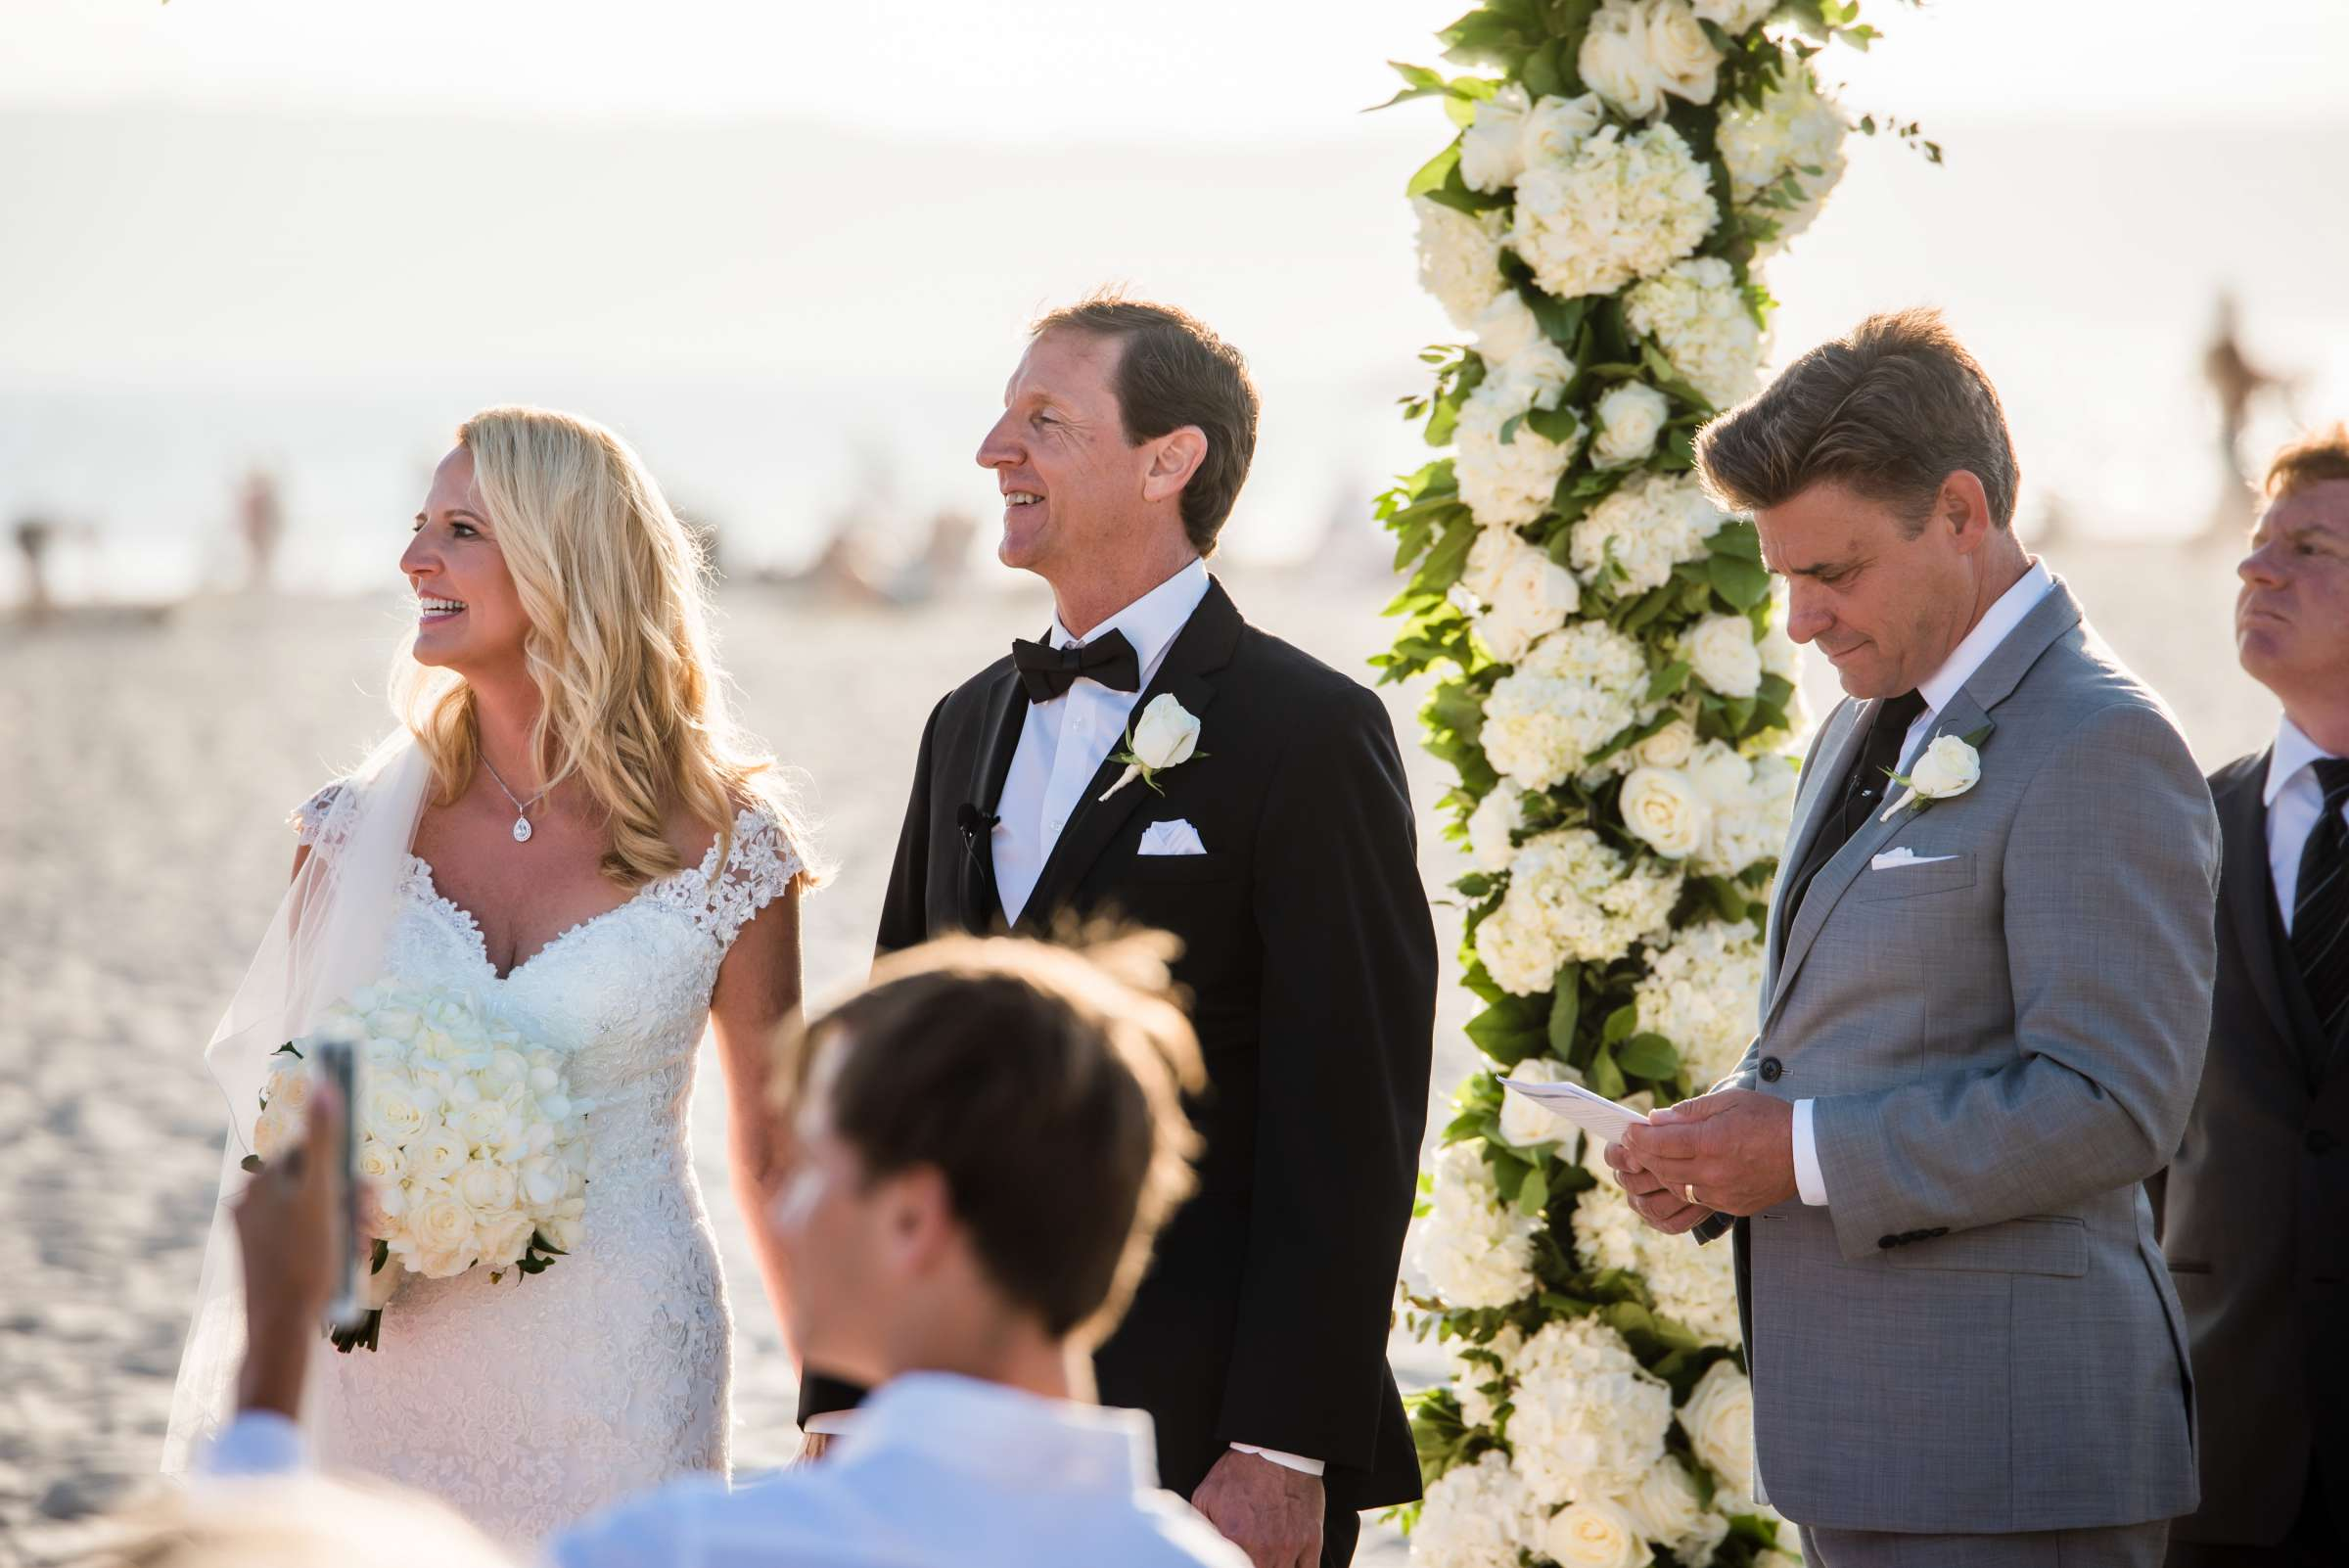 Hotel Del Coronado Wedding coordinated by Creative Affairs Inc, Diane and Paul Wedding Photo #61 by True Photography